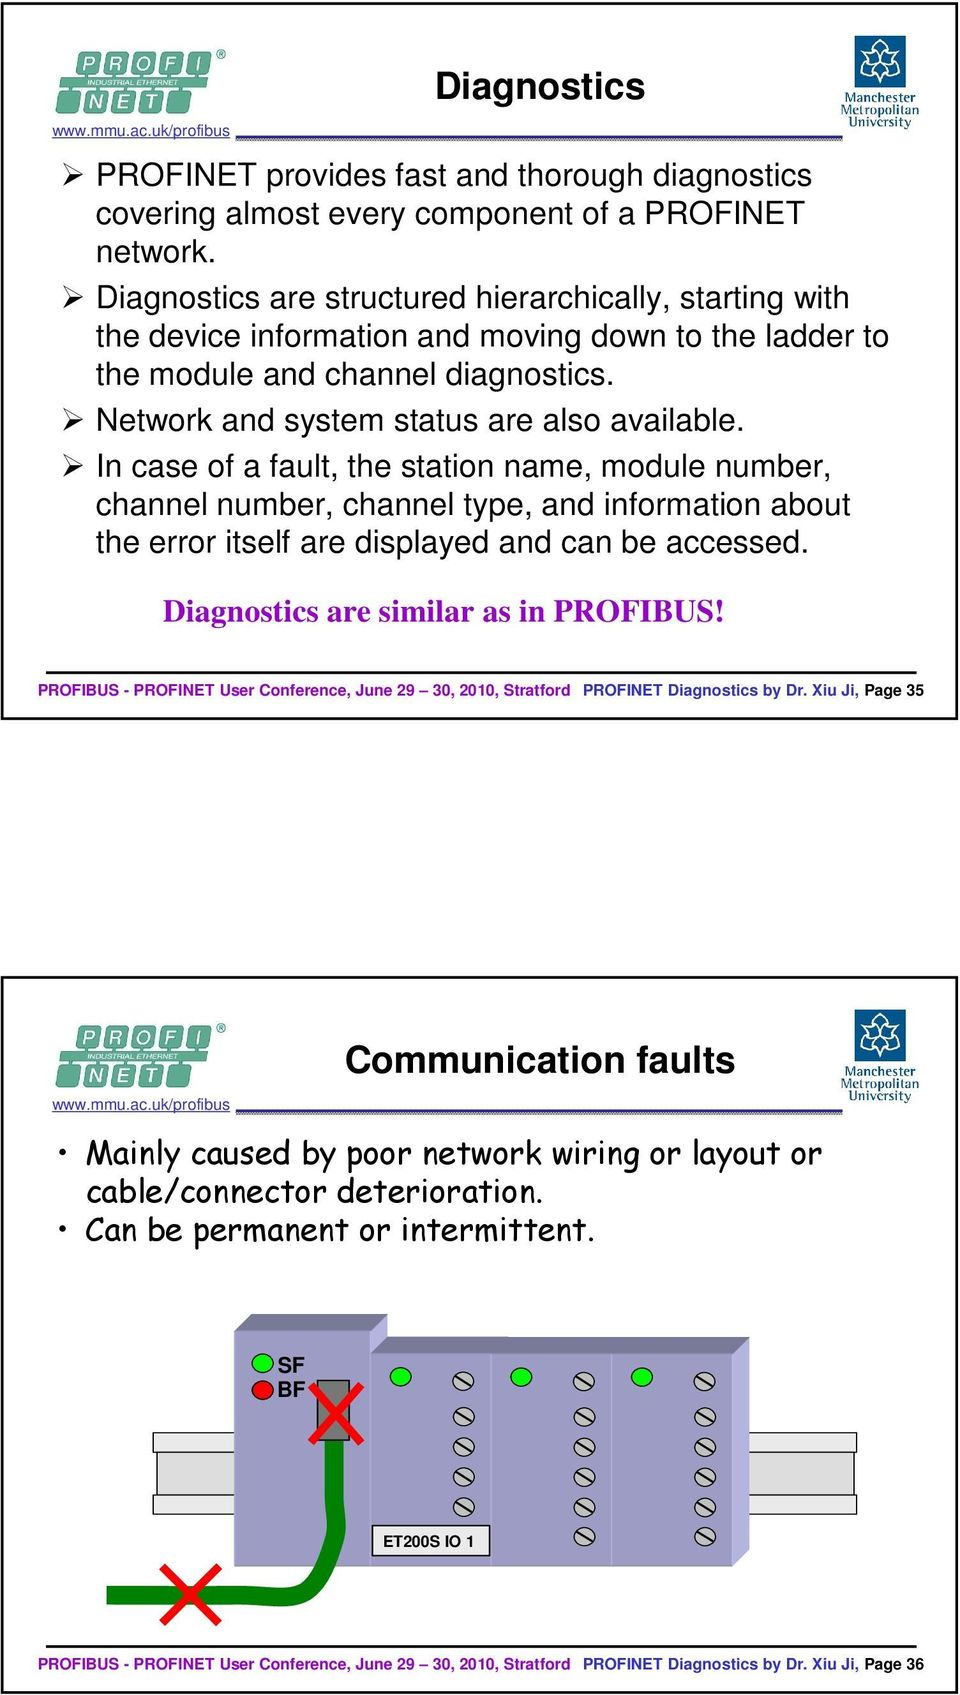 Network and system status are also available.